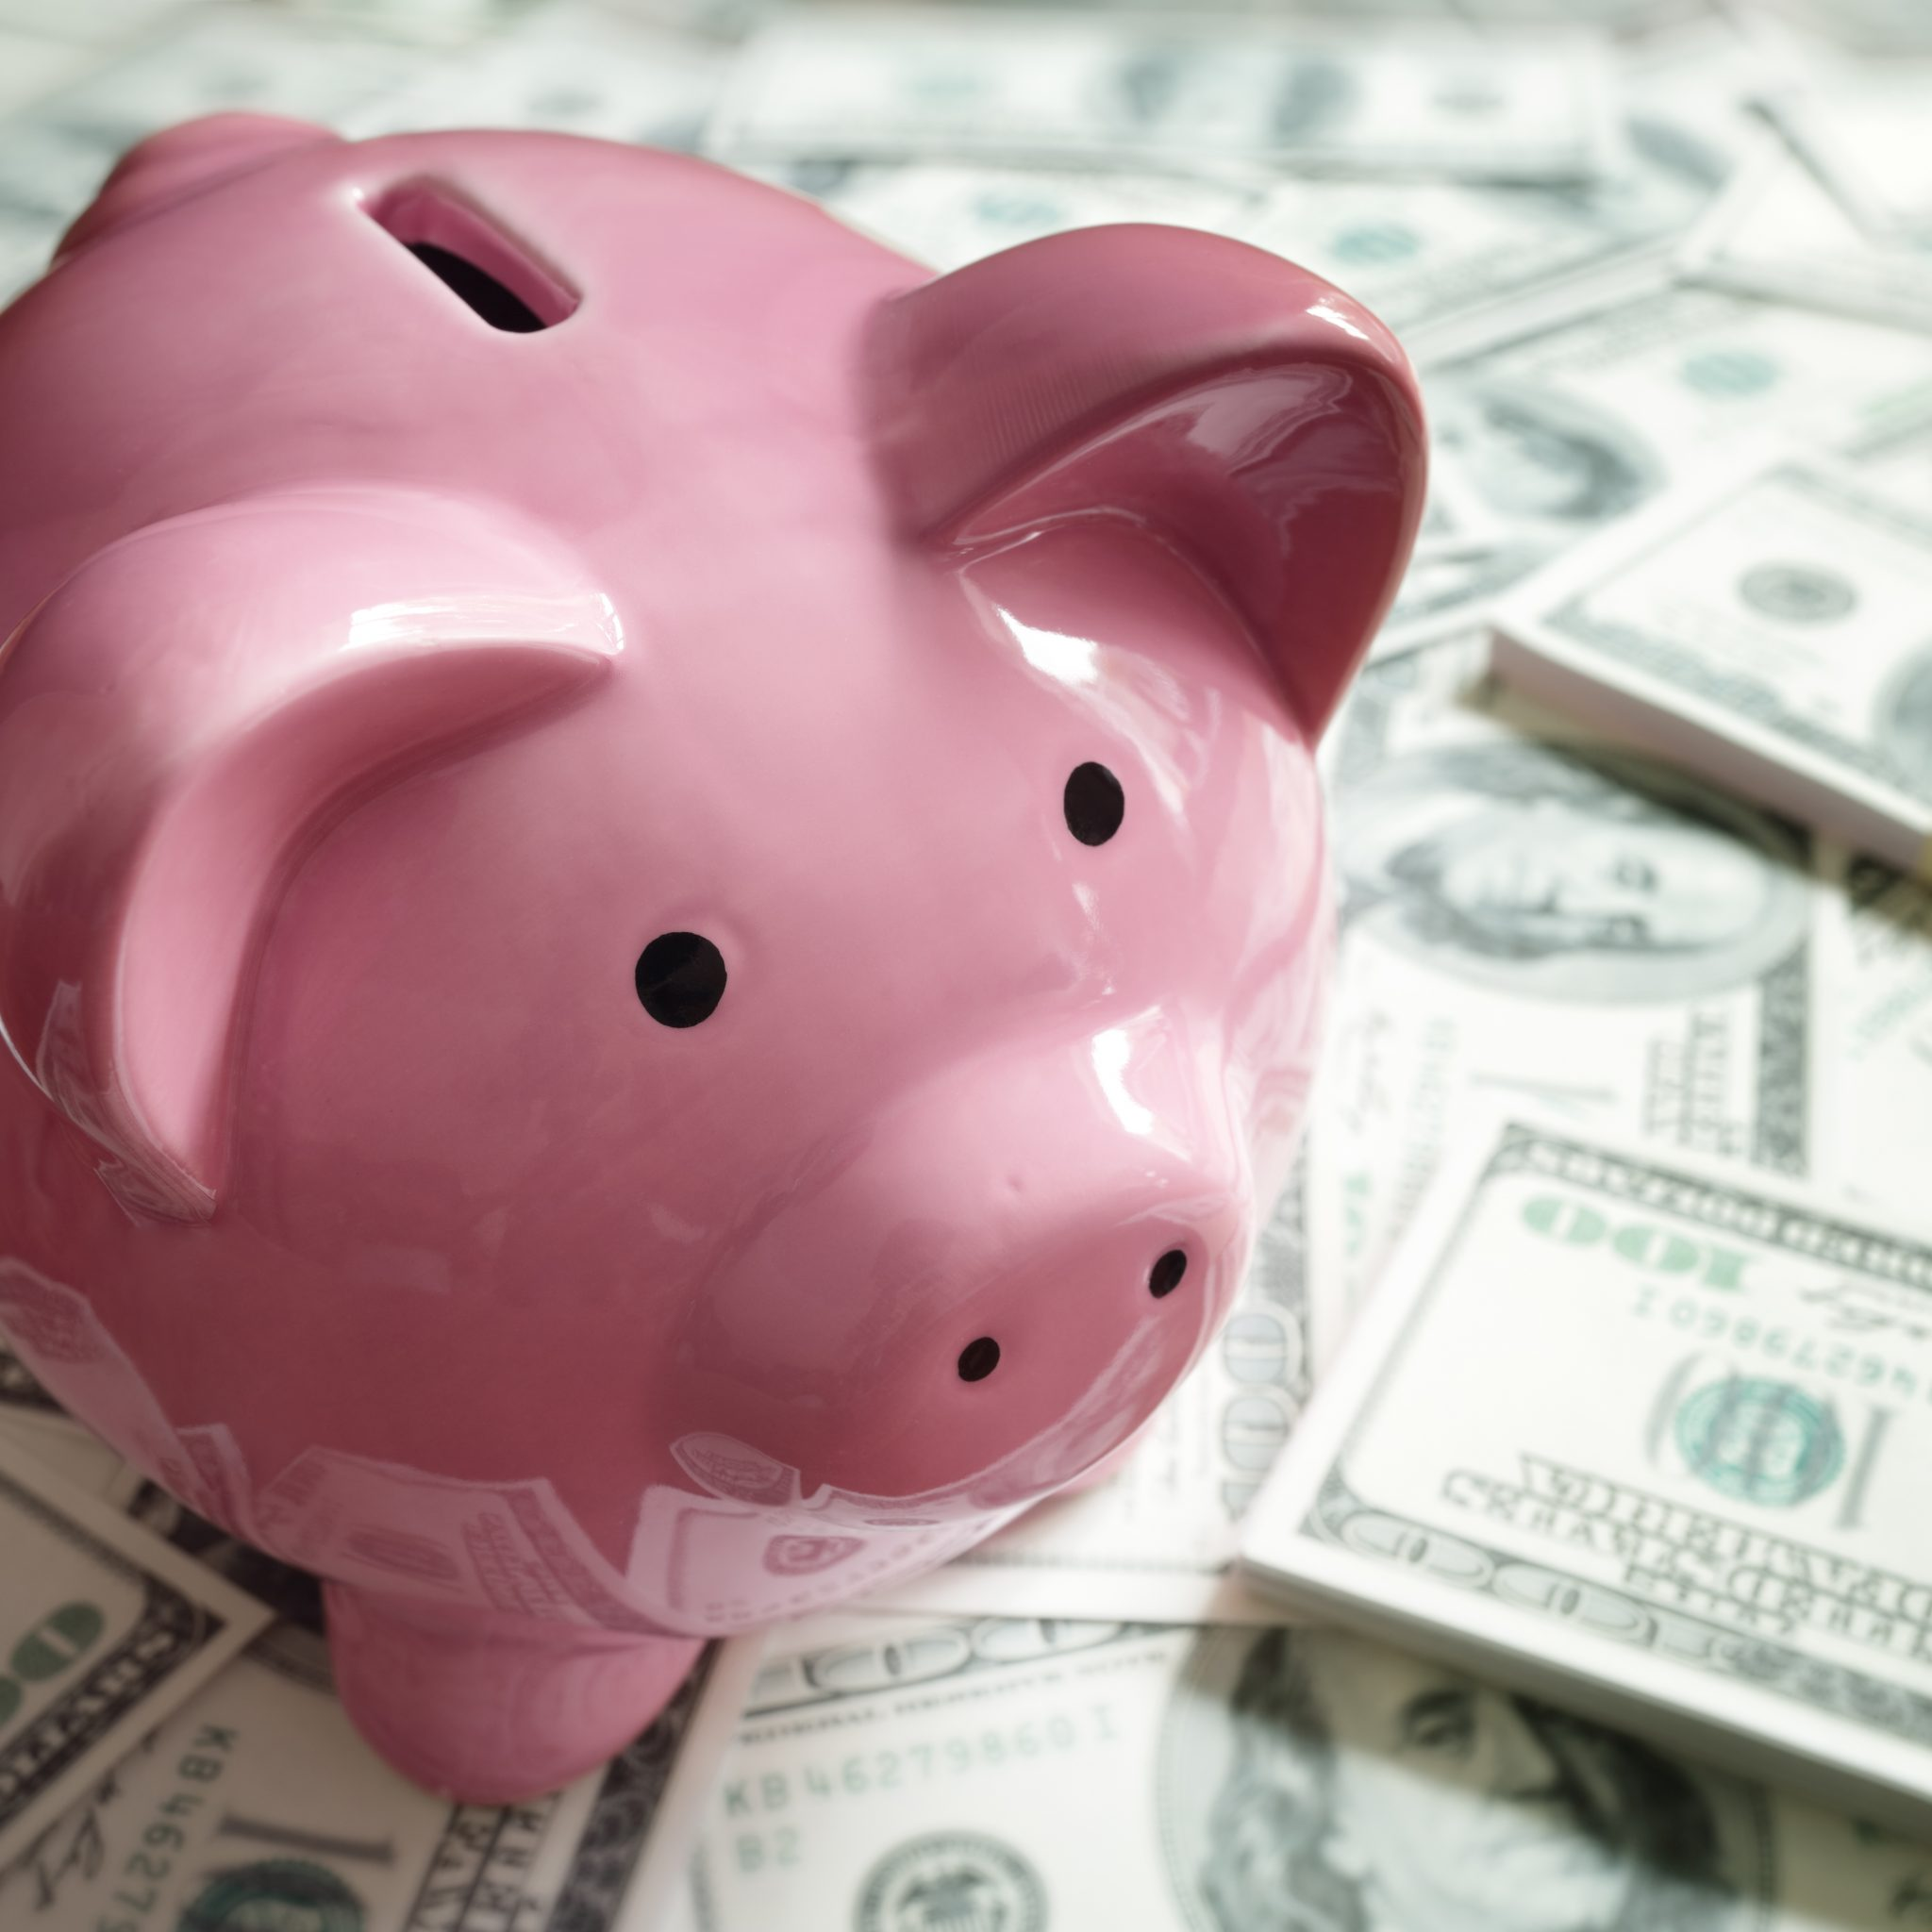 Pink piggy bank resting on a table of money.